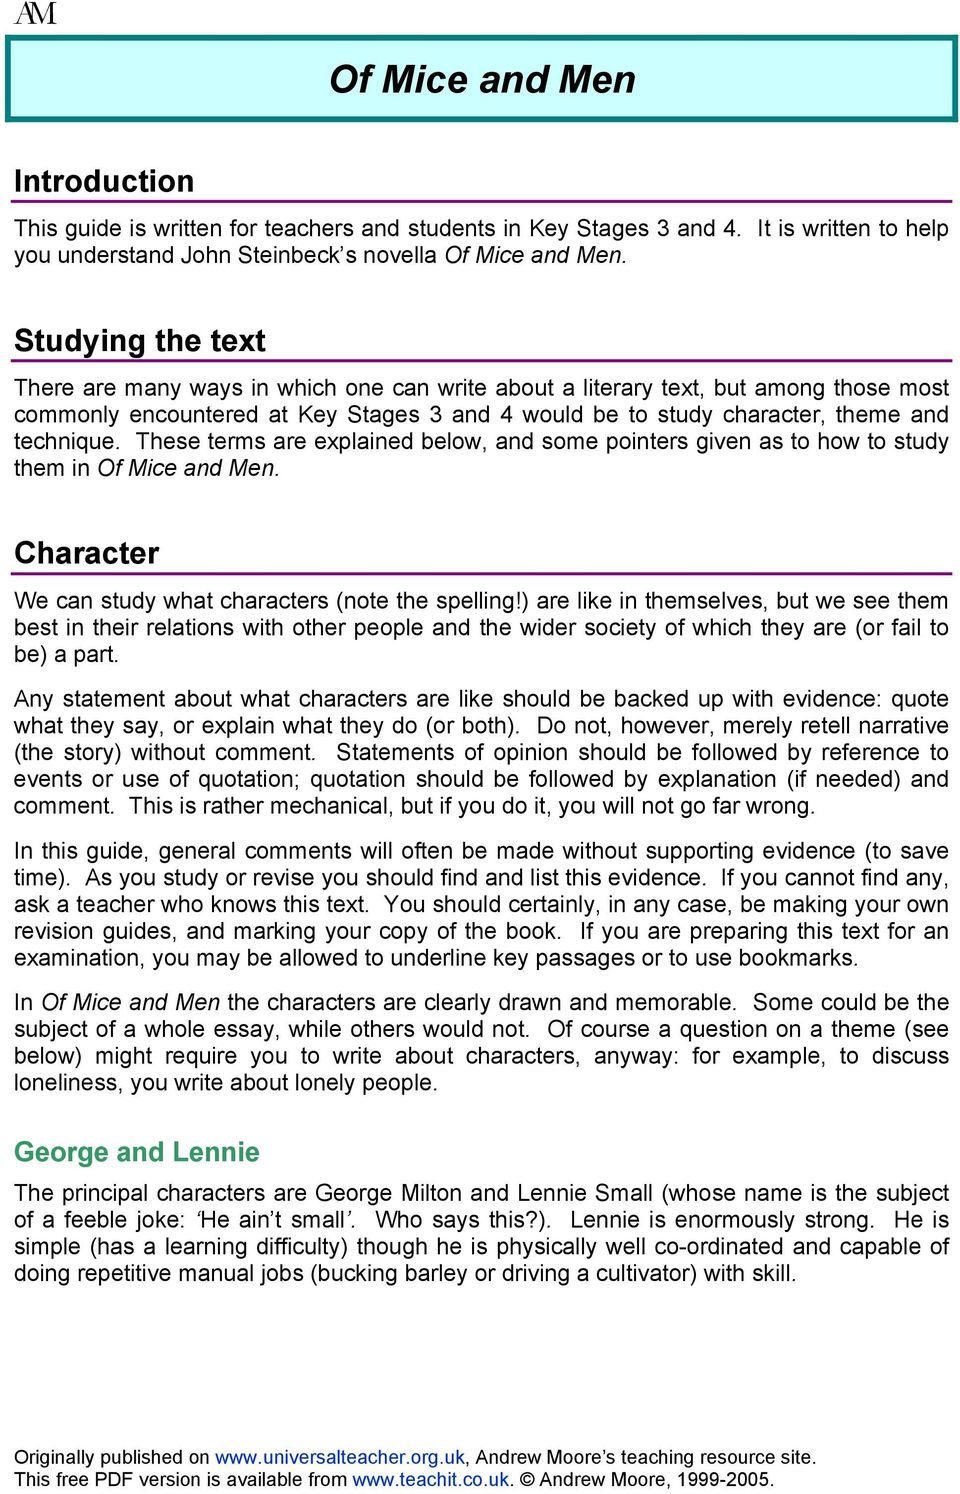 Of Mice And Men Introduction Studying The Text Character George  These Terms Are Explained Below And Some Pointers Given As To How To Study  Them